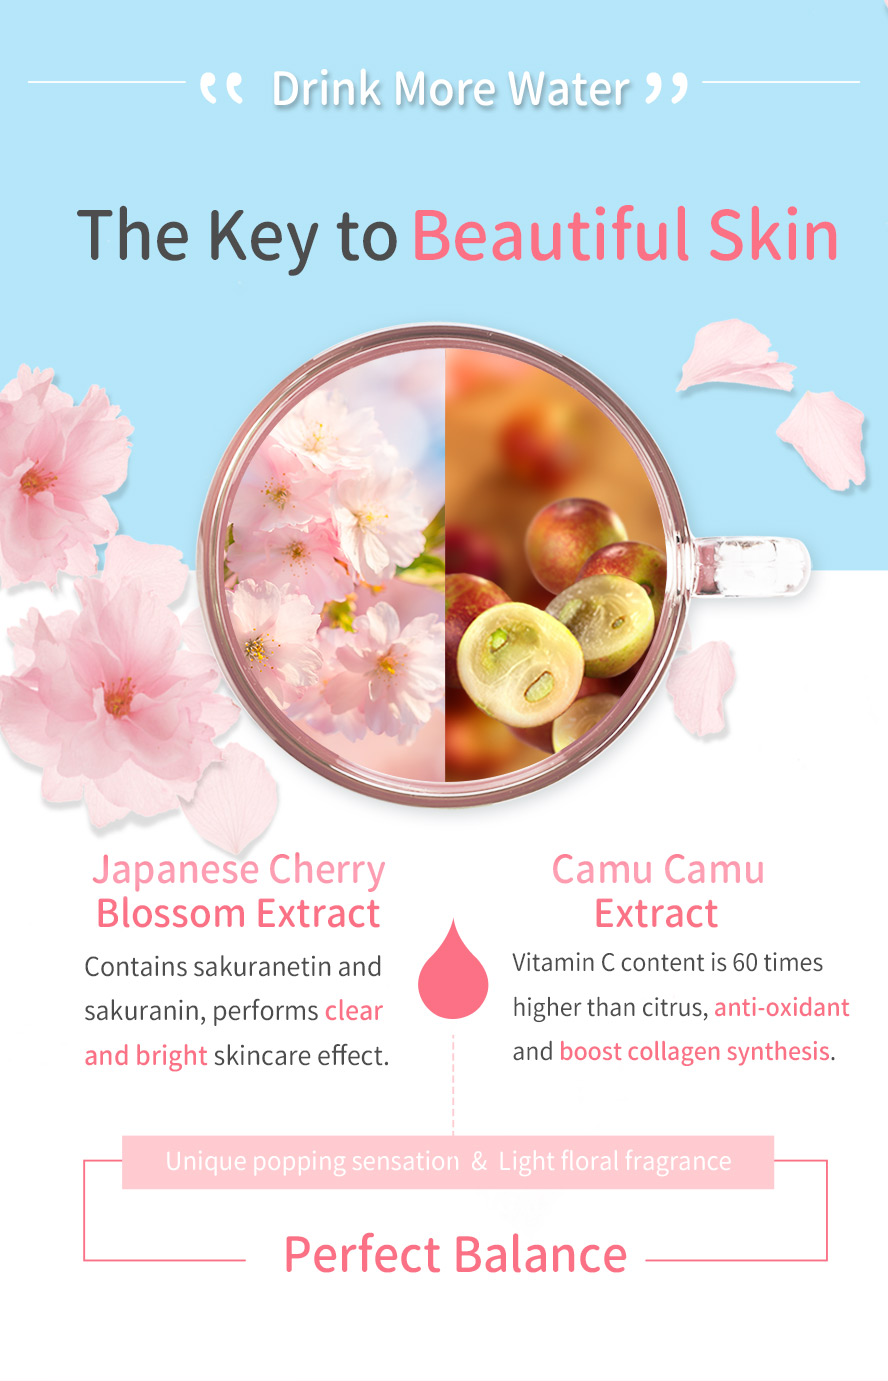 BHKs beauty drink contains sakura extract that promotes collagen formation, and camu camu berry extract that has richest source of Vitamin C.